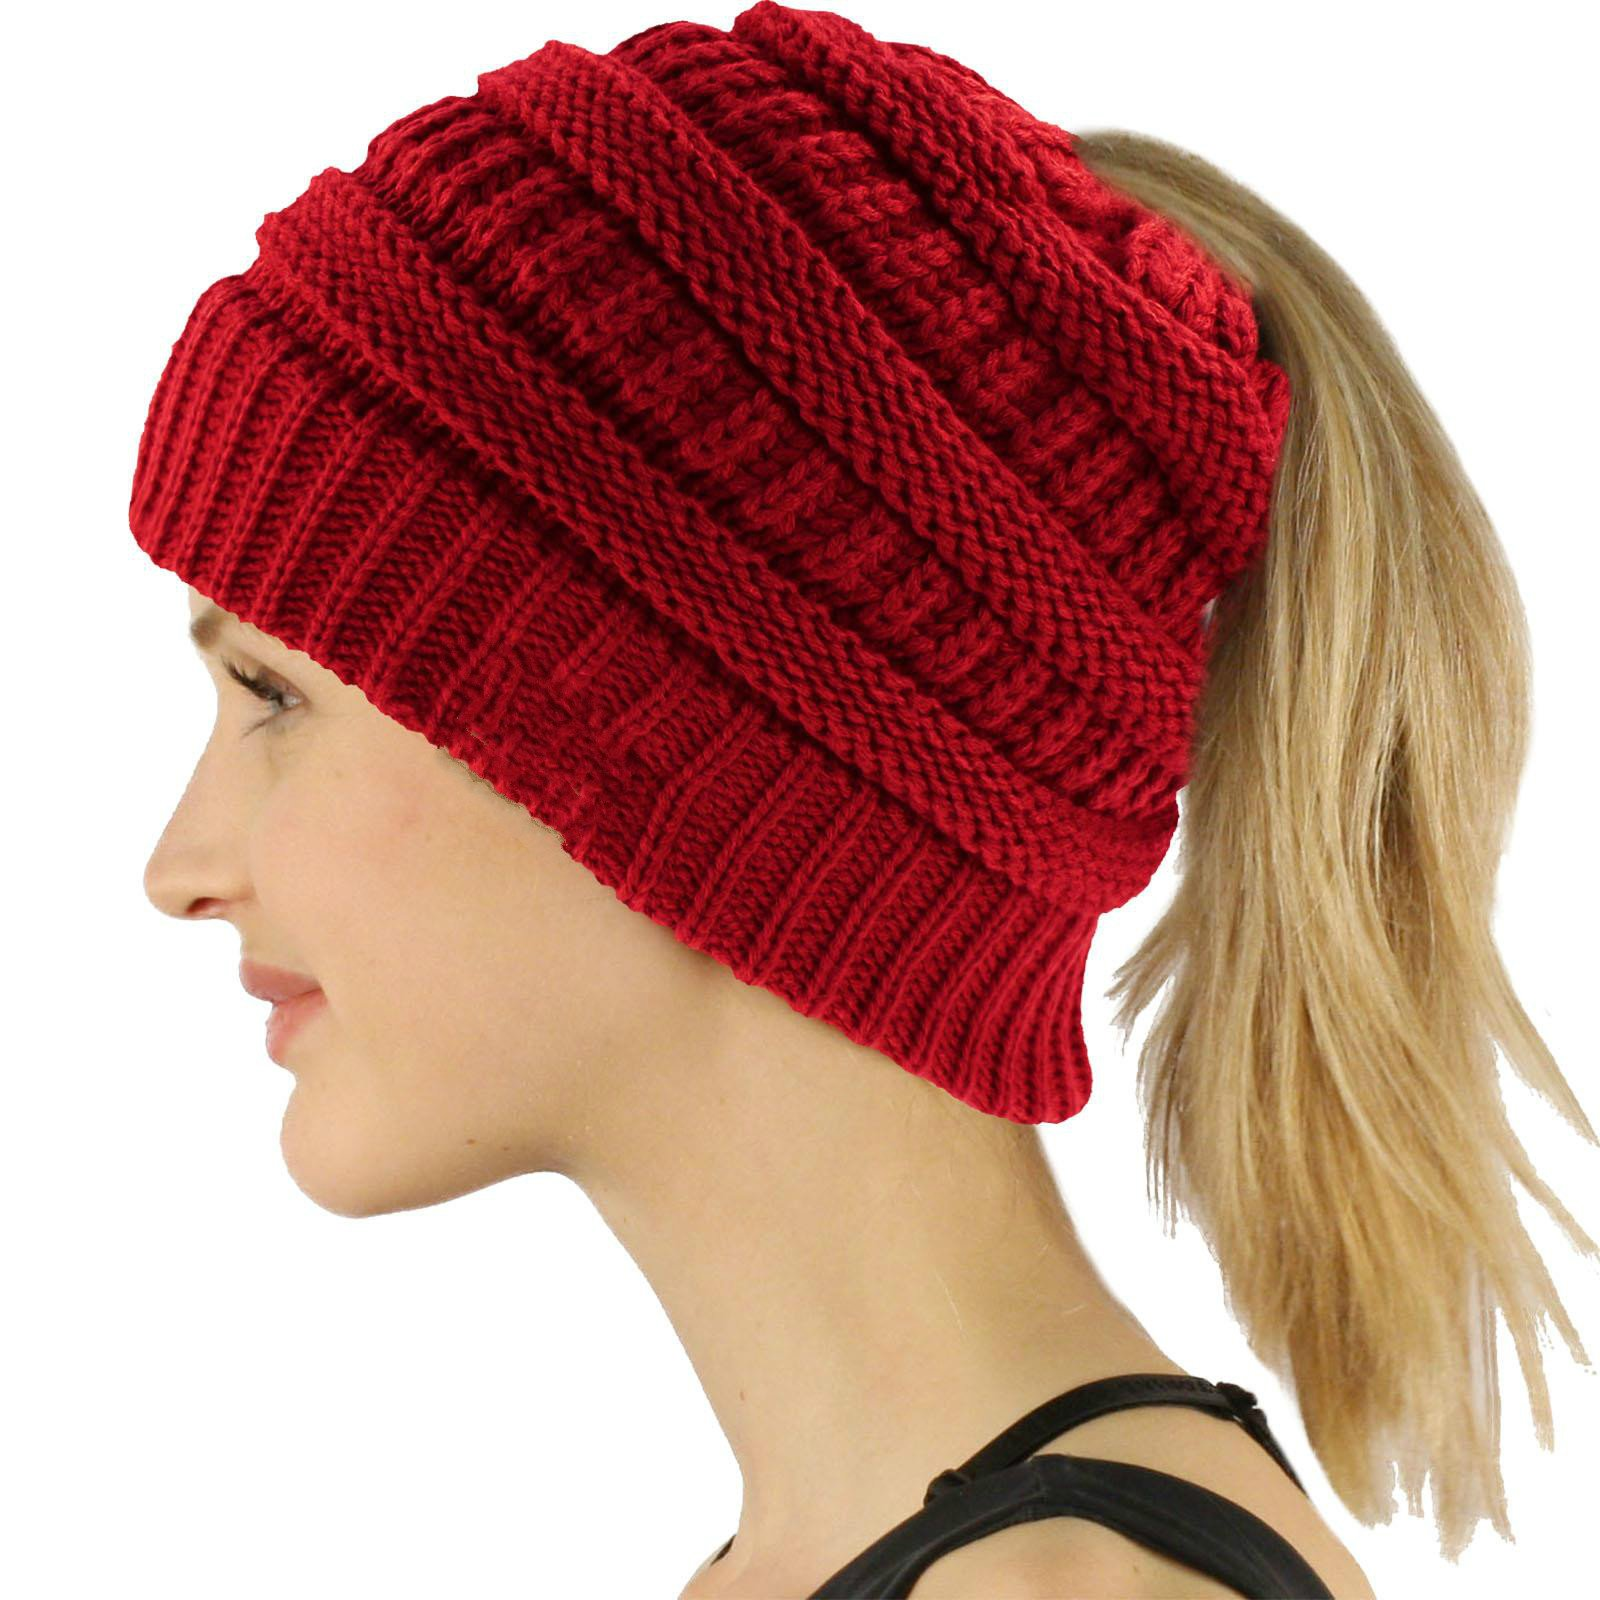 COCO LEE Chic Red Knit Hat Cable Beanie Stretch Chunky Winter Bun Ponytail Beanie Tail Womens Ponytail Messy Bun Beanie Solid Ribbed Hat Cap for Women Girls